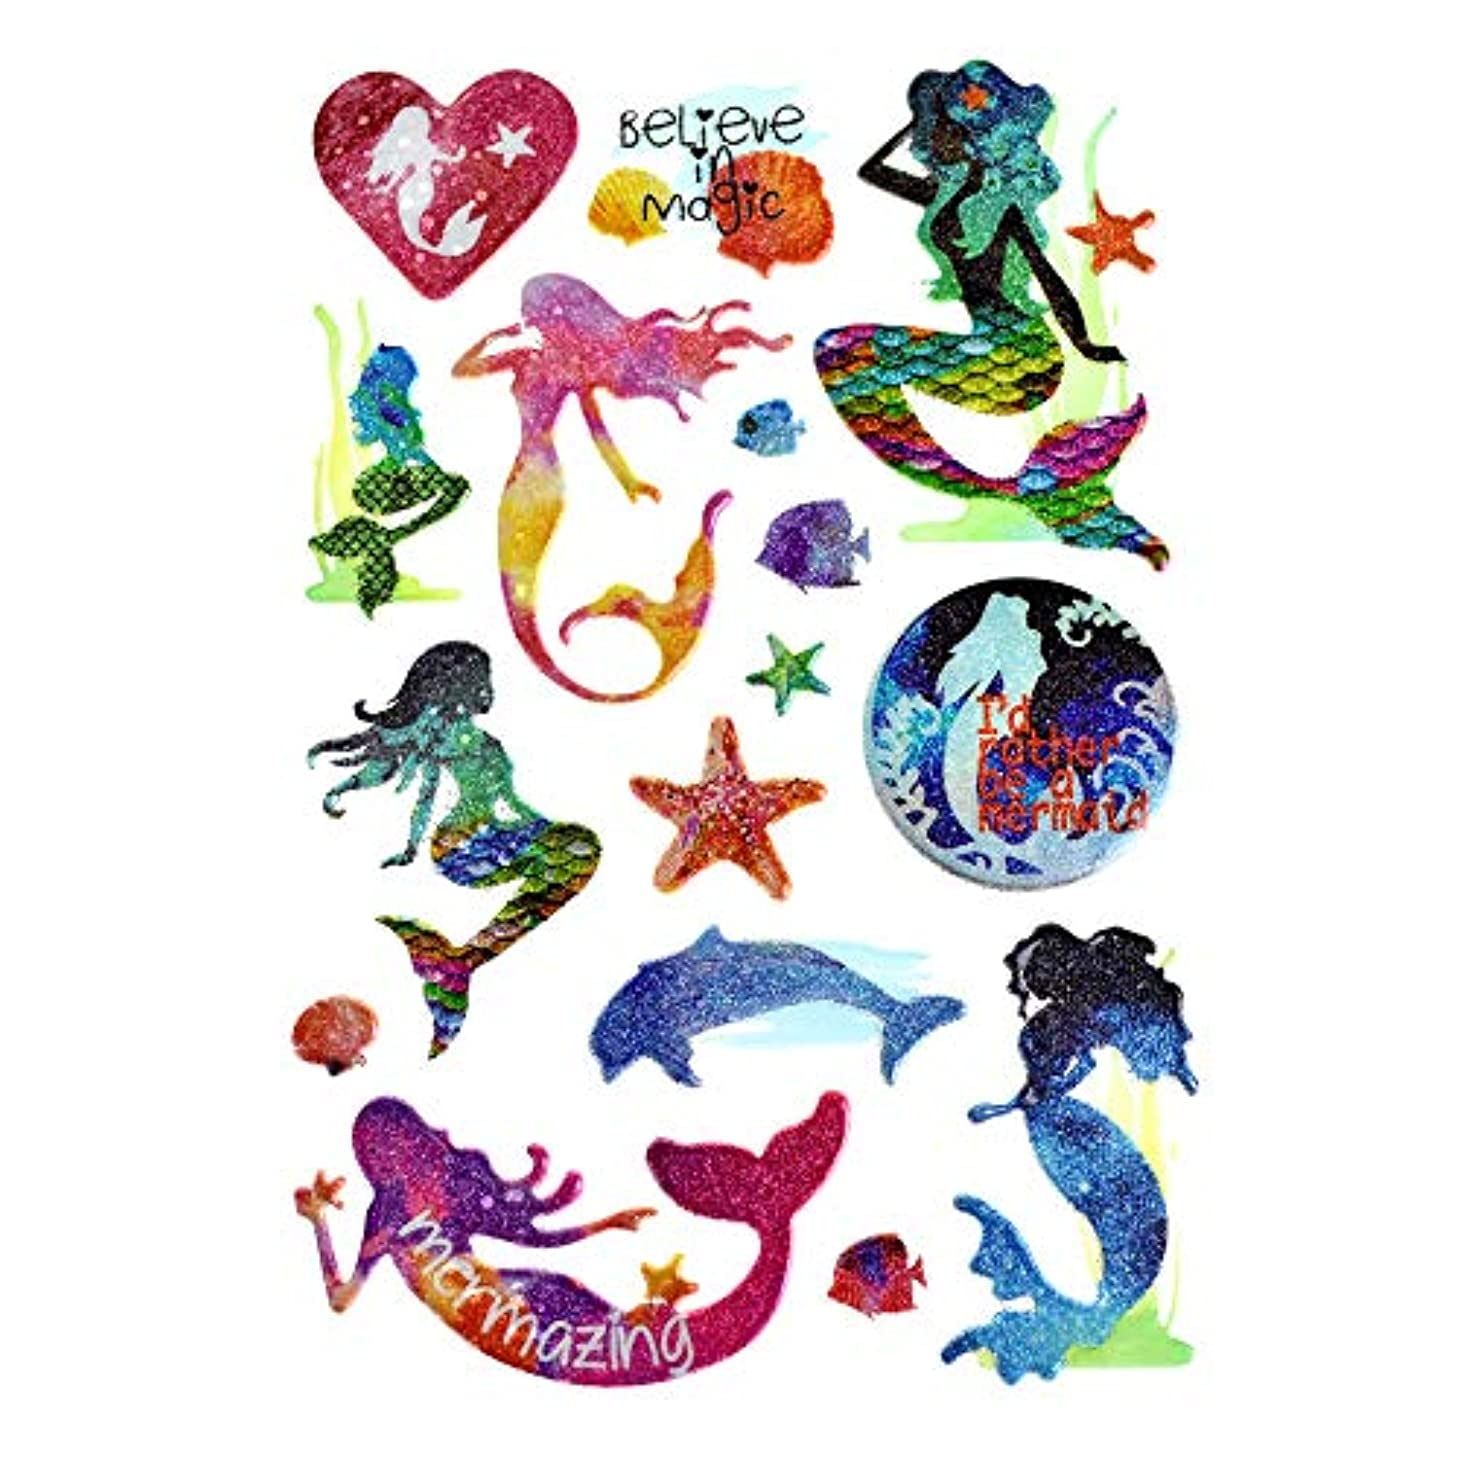 Homeford Ocean Mermaid 3D Puffy Glitter Stickers, 16-Piece